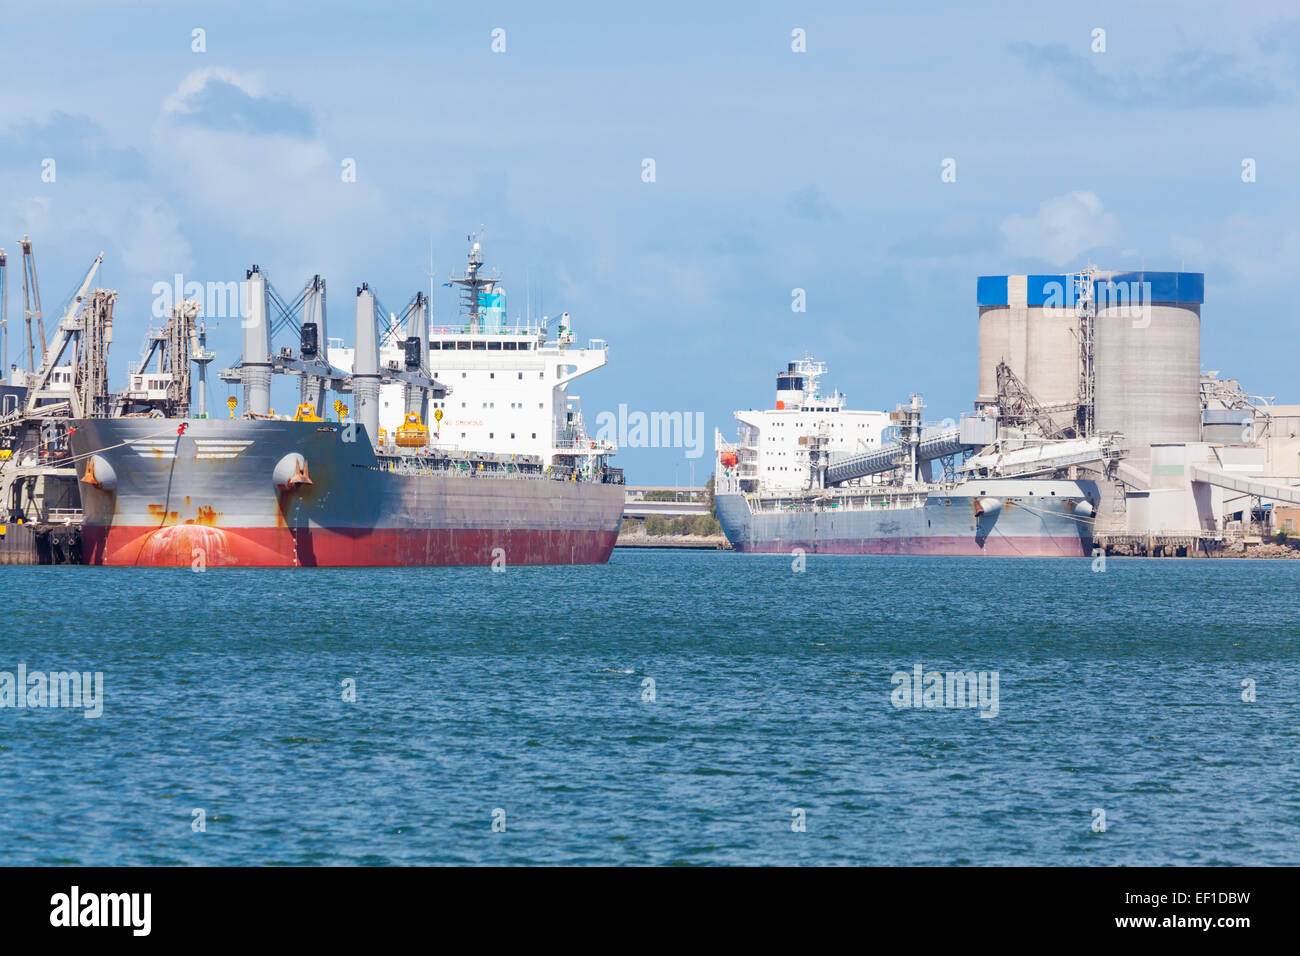 Cargo ships unloading at a port - Stock Image